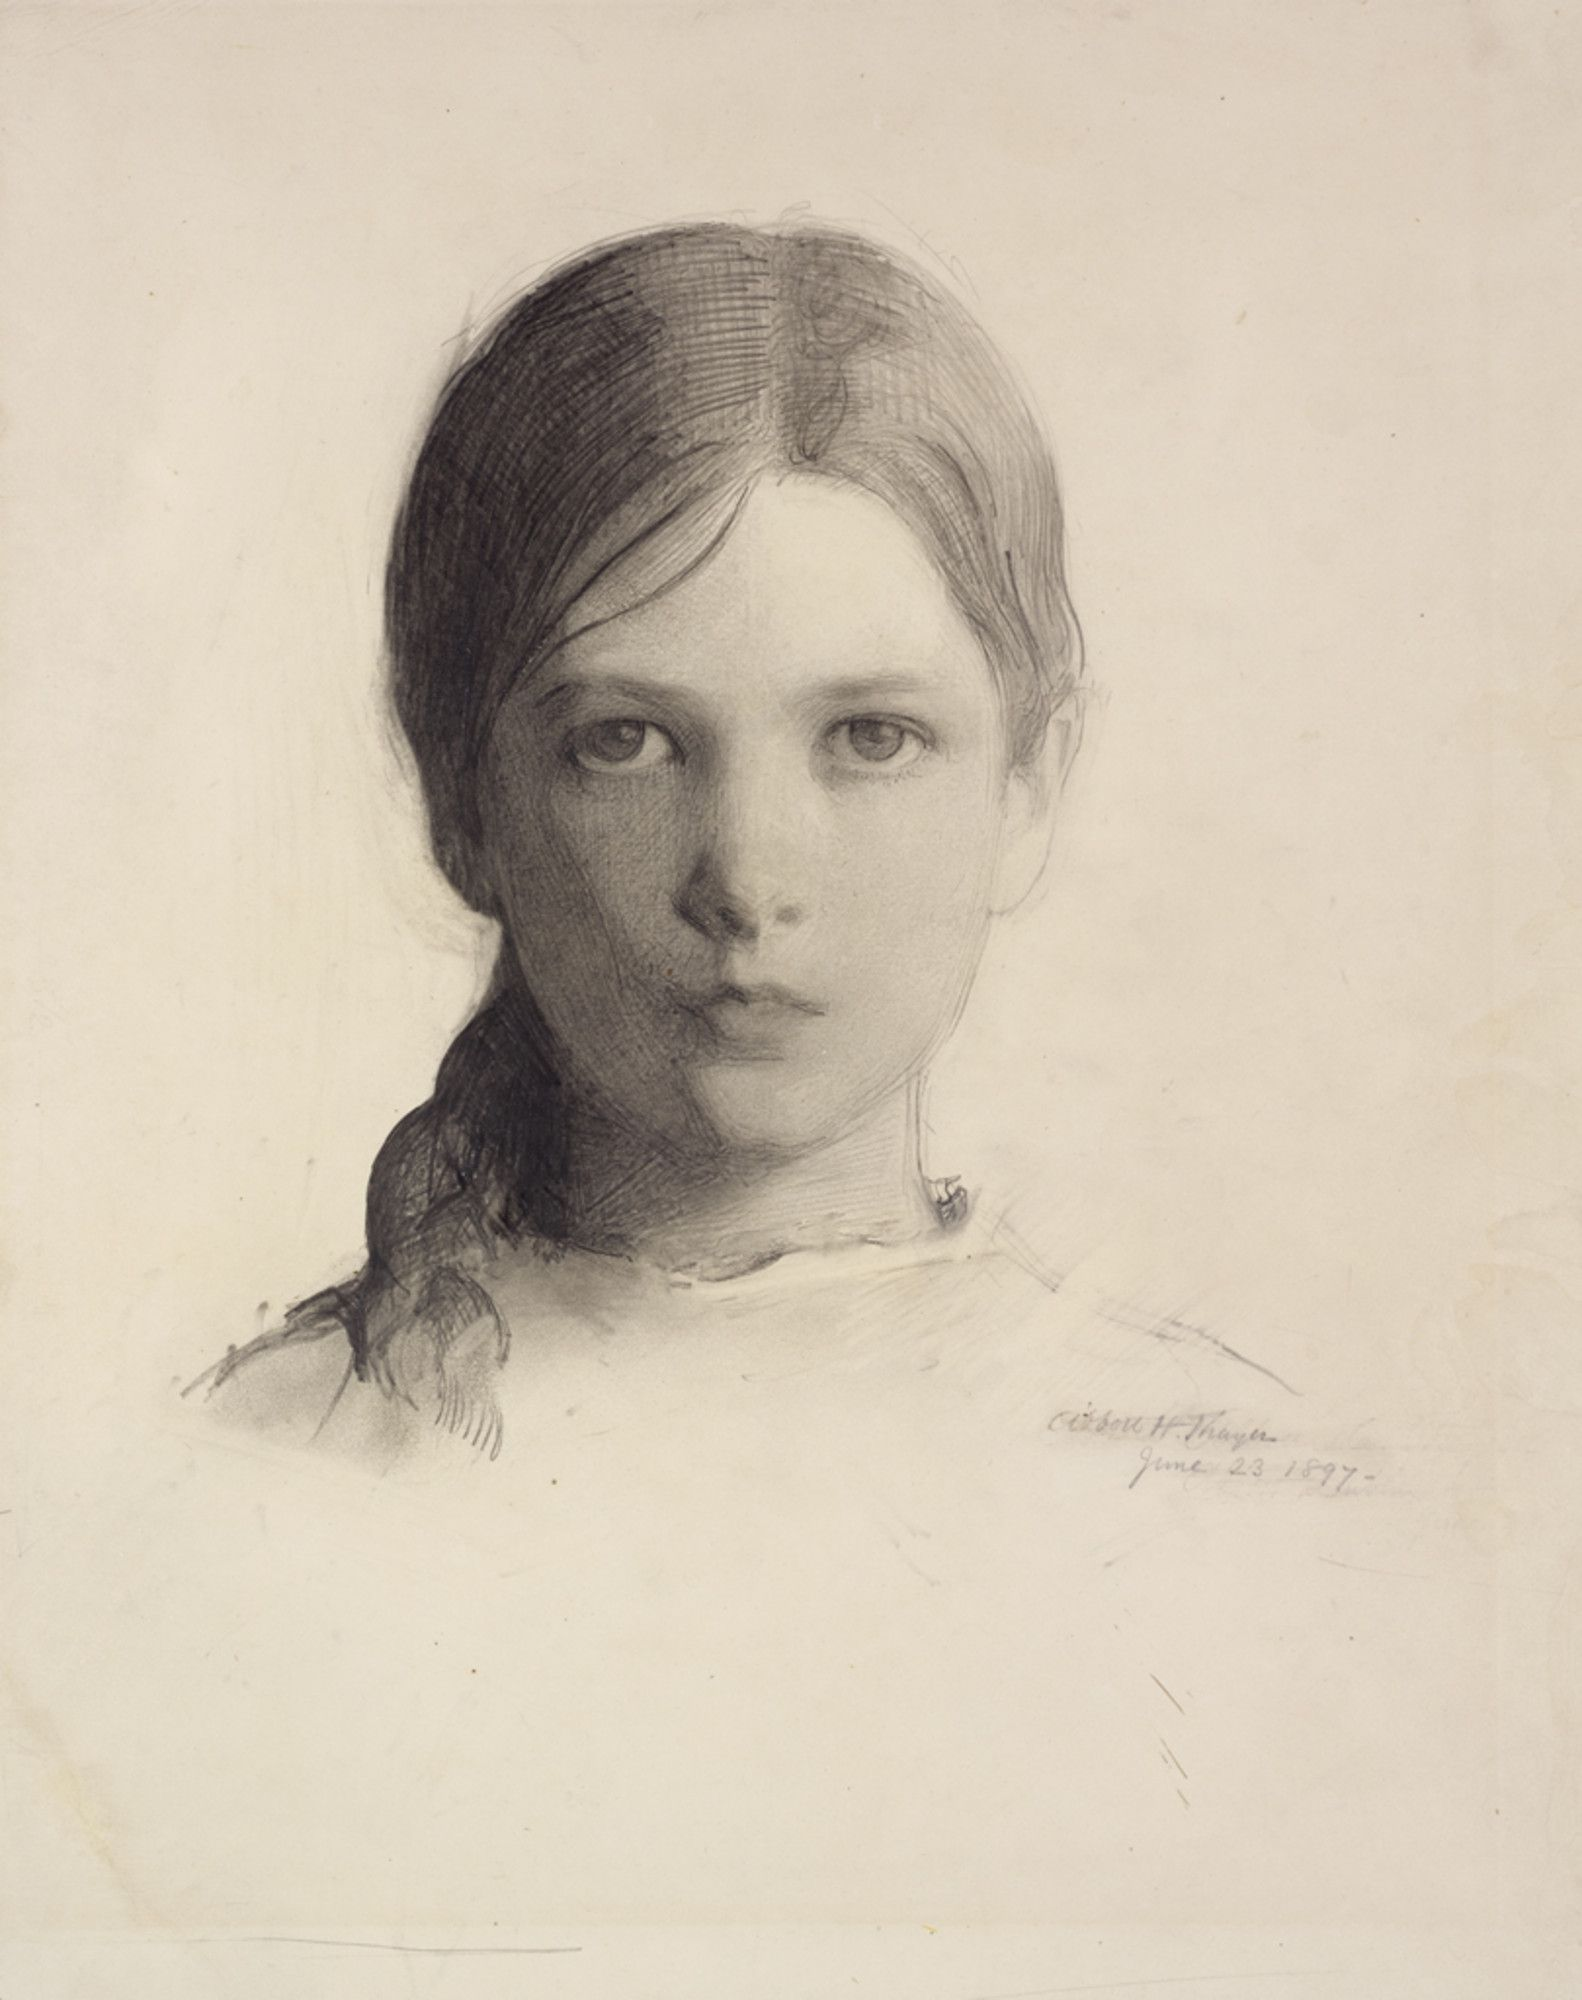 Abbott Handerson Thayer (1849-1921), Portrait Head of a Young Girl (Gladys Thayer at 11), 1897, Crayon on wove paper | RISD MUSEUM